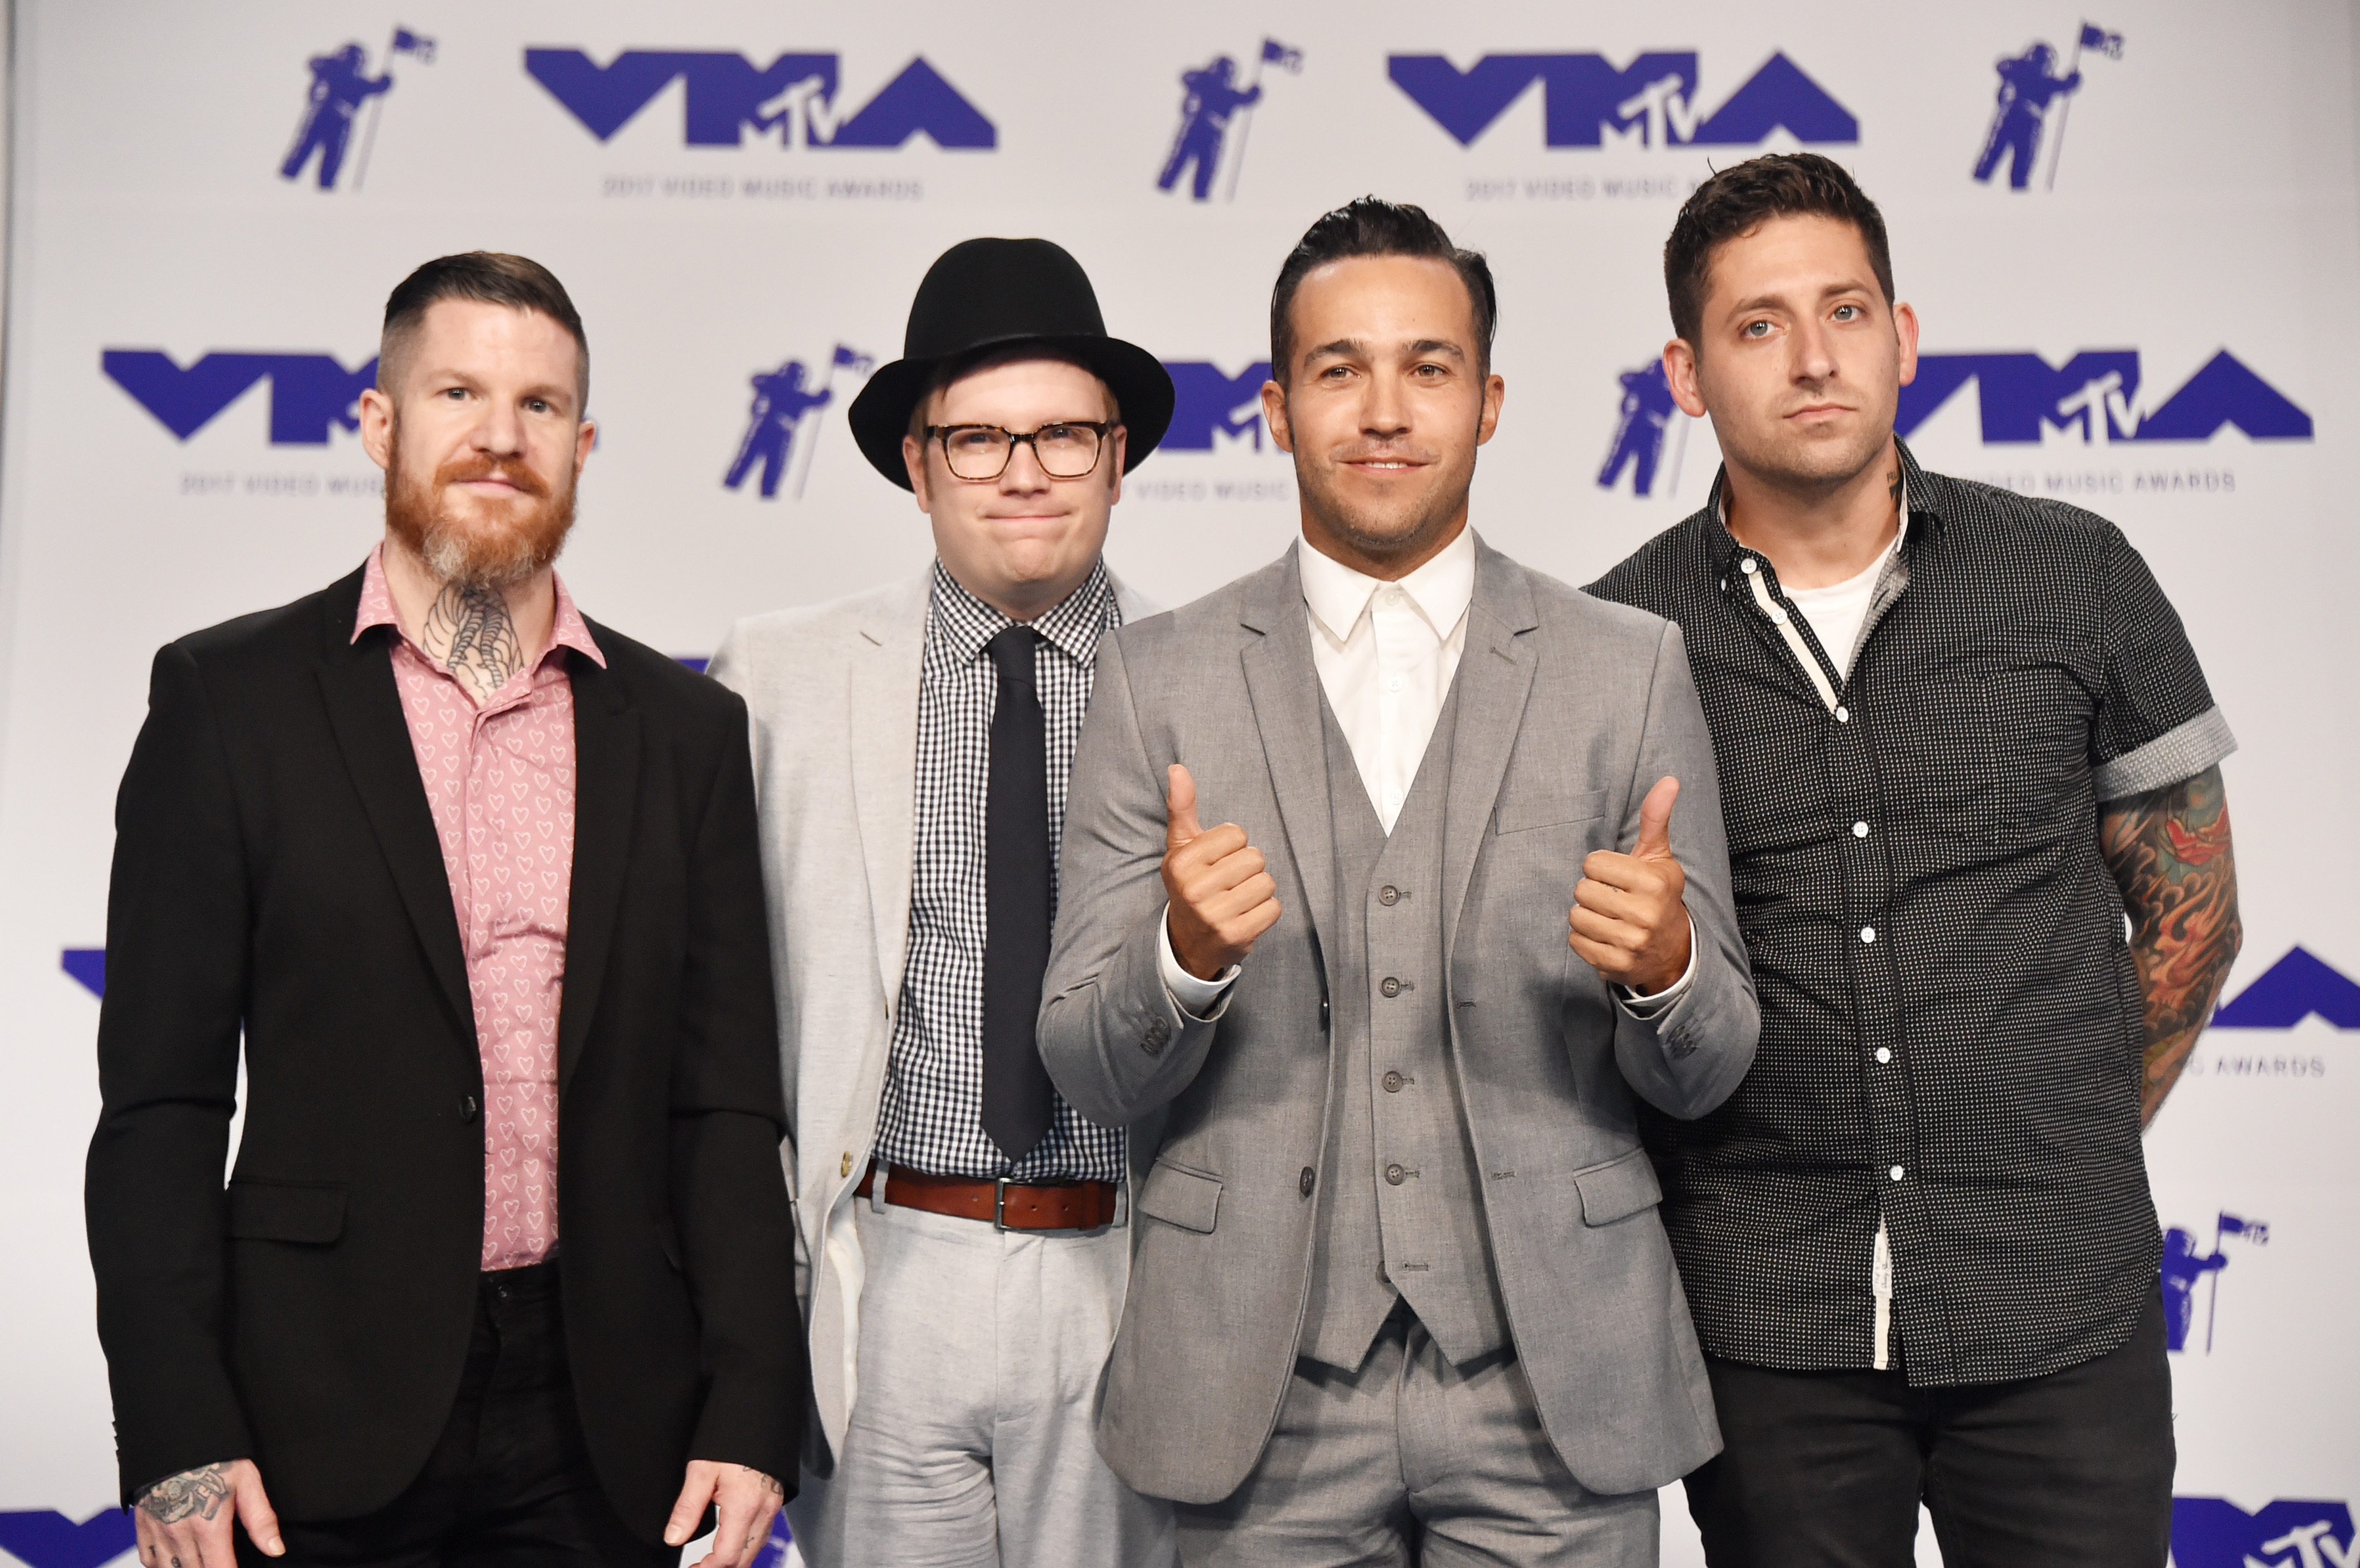 Andy Hurley, Patrick Stump, Pete Wentz and Joe Trohman of Fall Out Boy attend the MTV Video Music Awards in Los Angeles on Aug. 27, 2017.